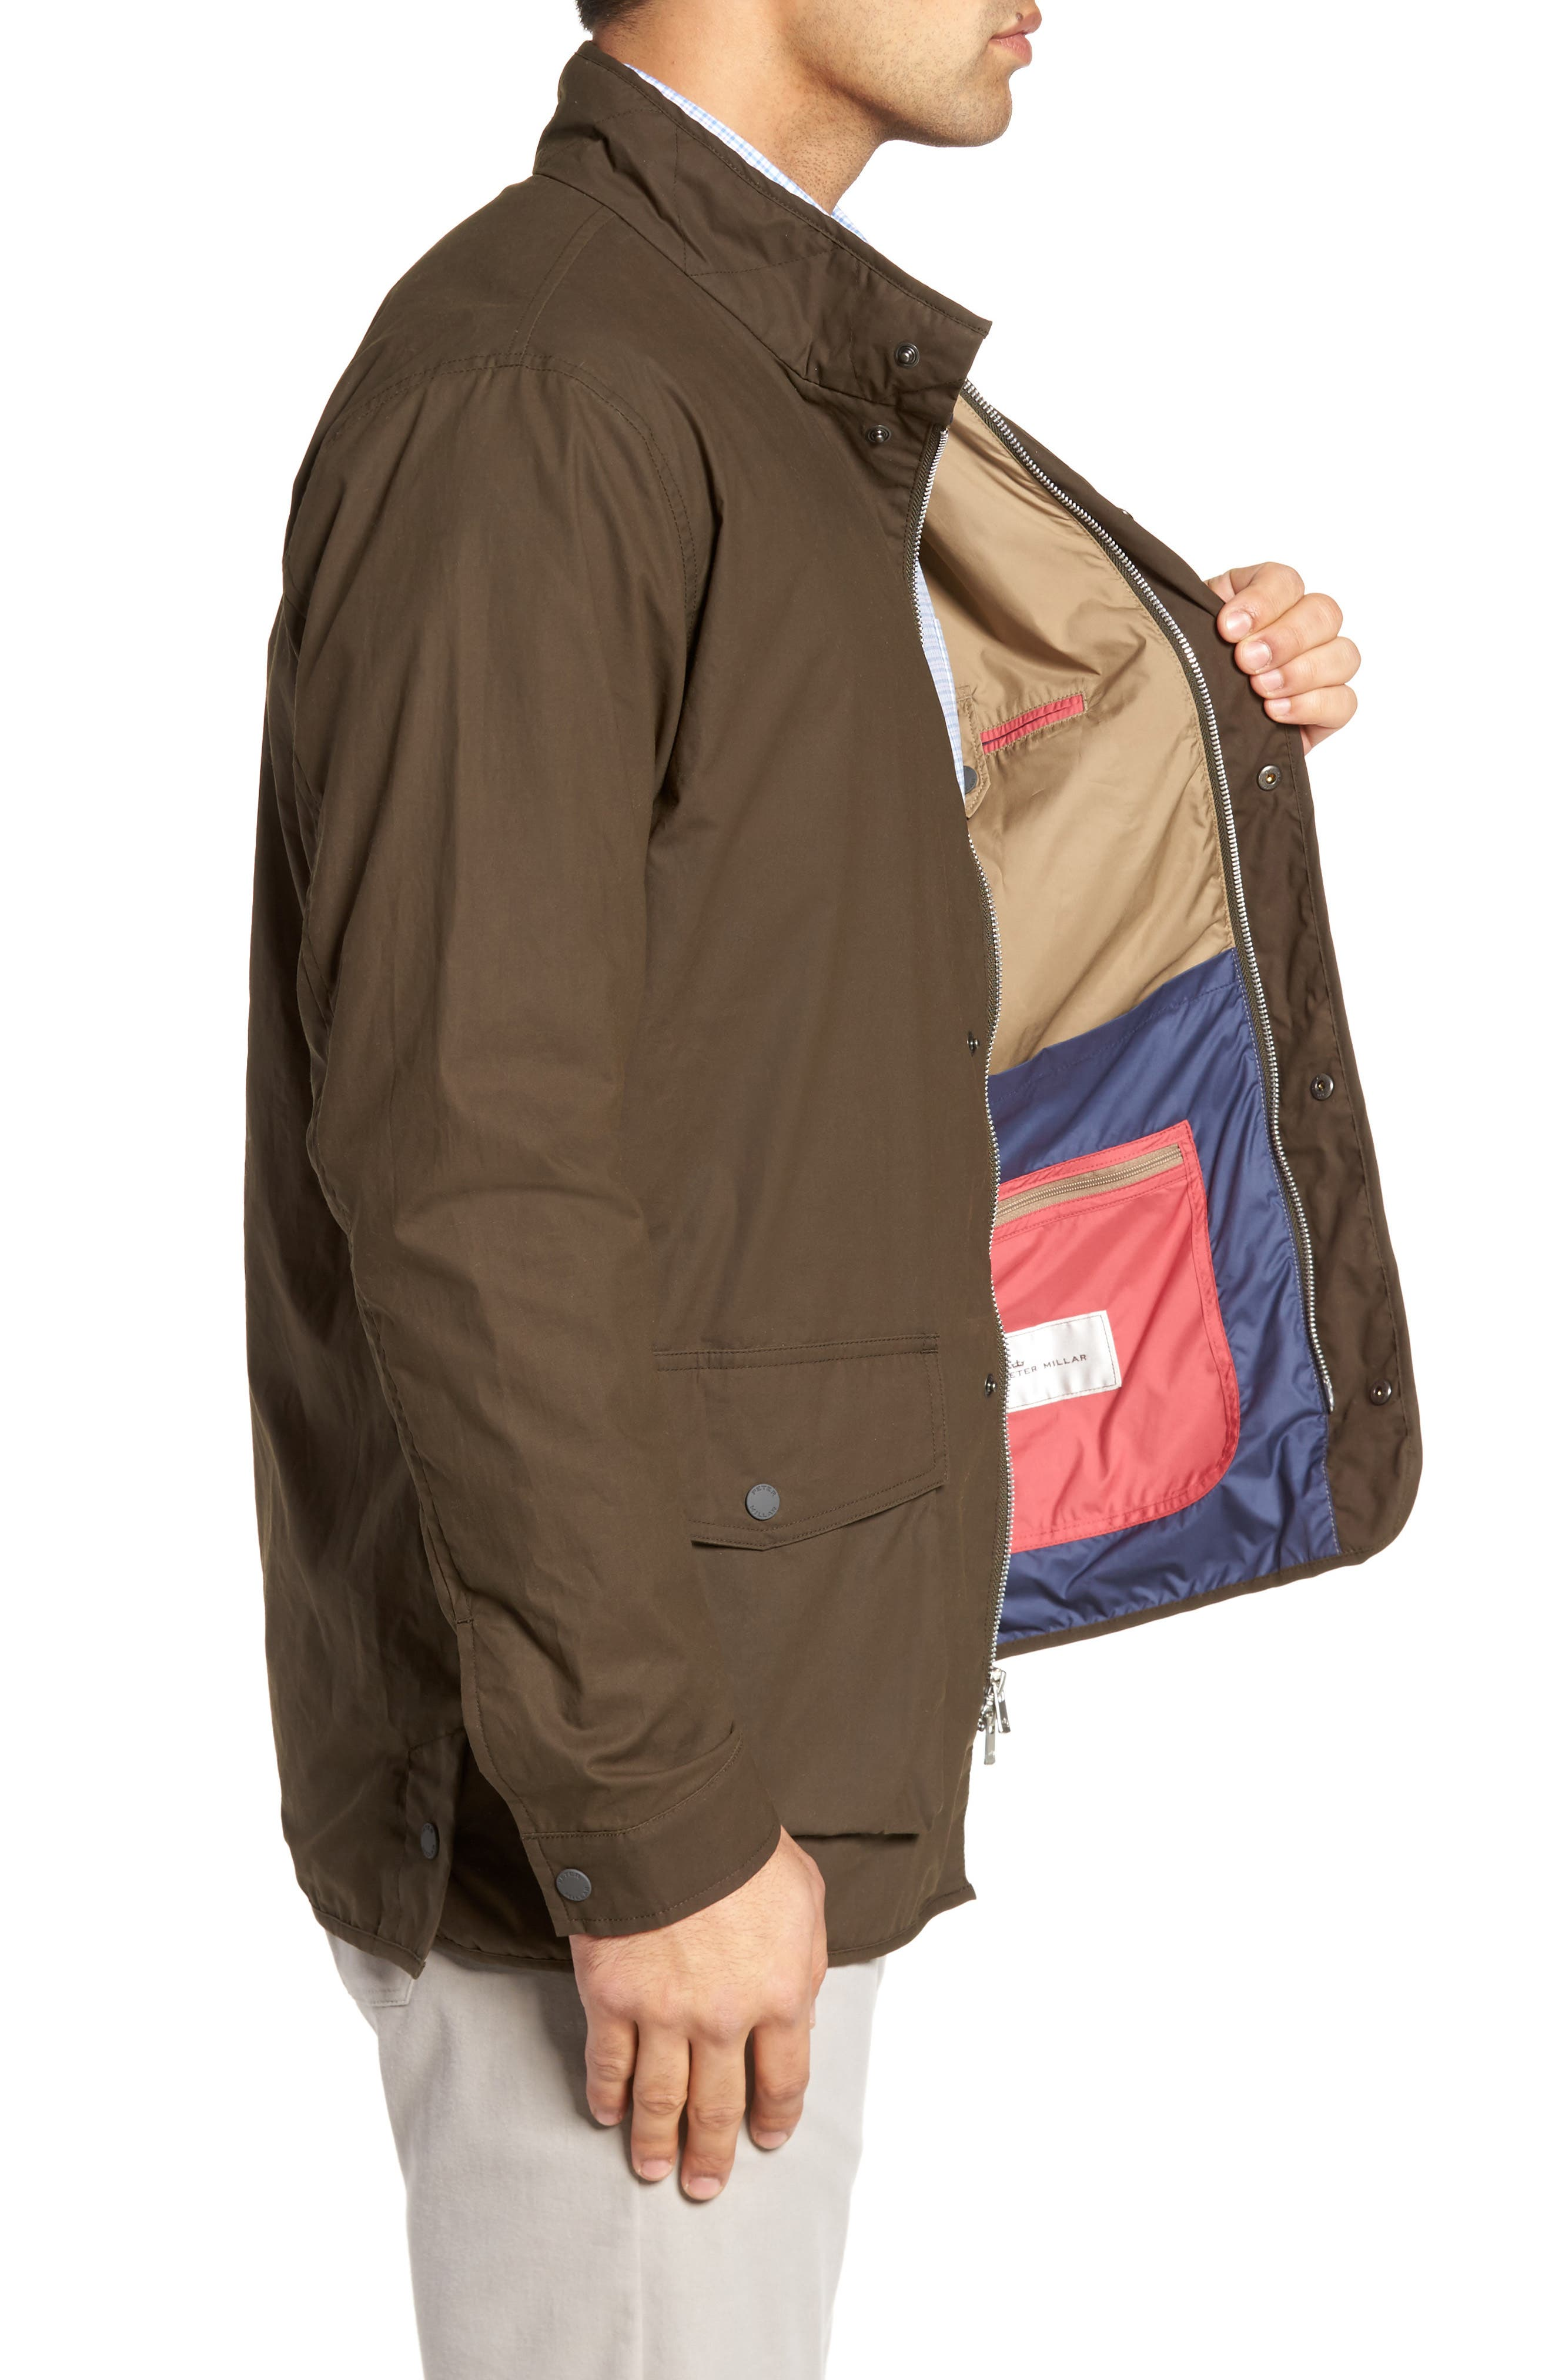 Harrison Wine Country Field Jacket,                             Alternate thumbnail 3, color,                             391